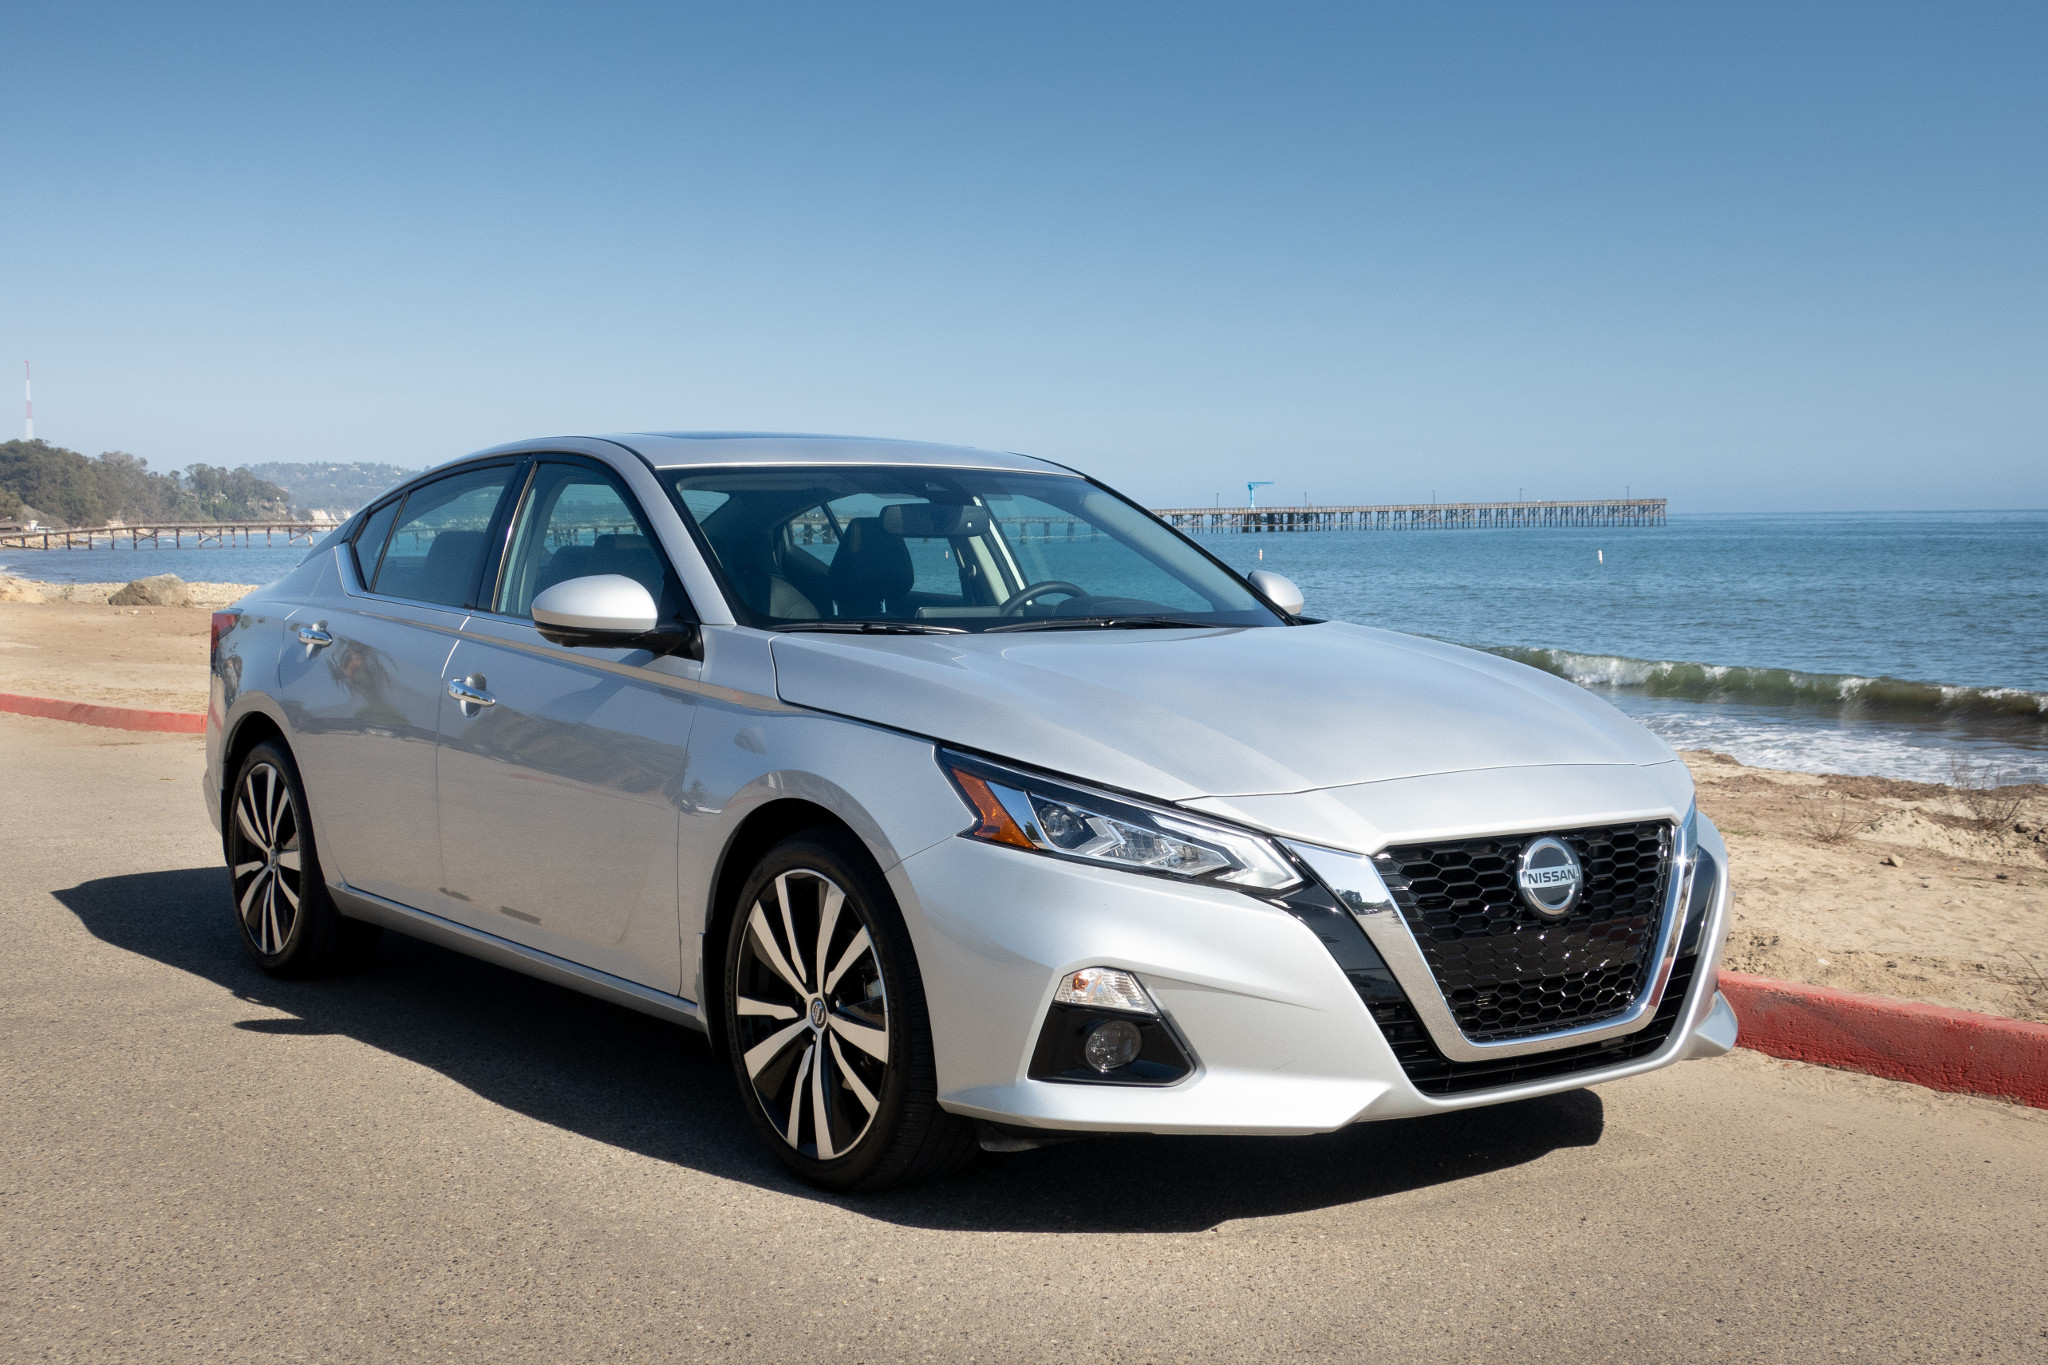 2019-2020 Nissan Altima: Everything You Need to Know